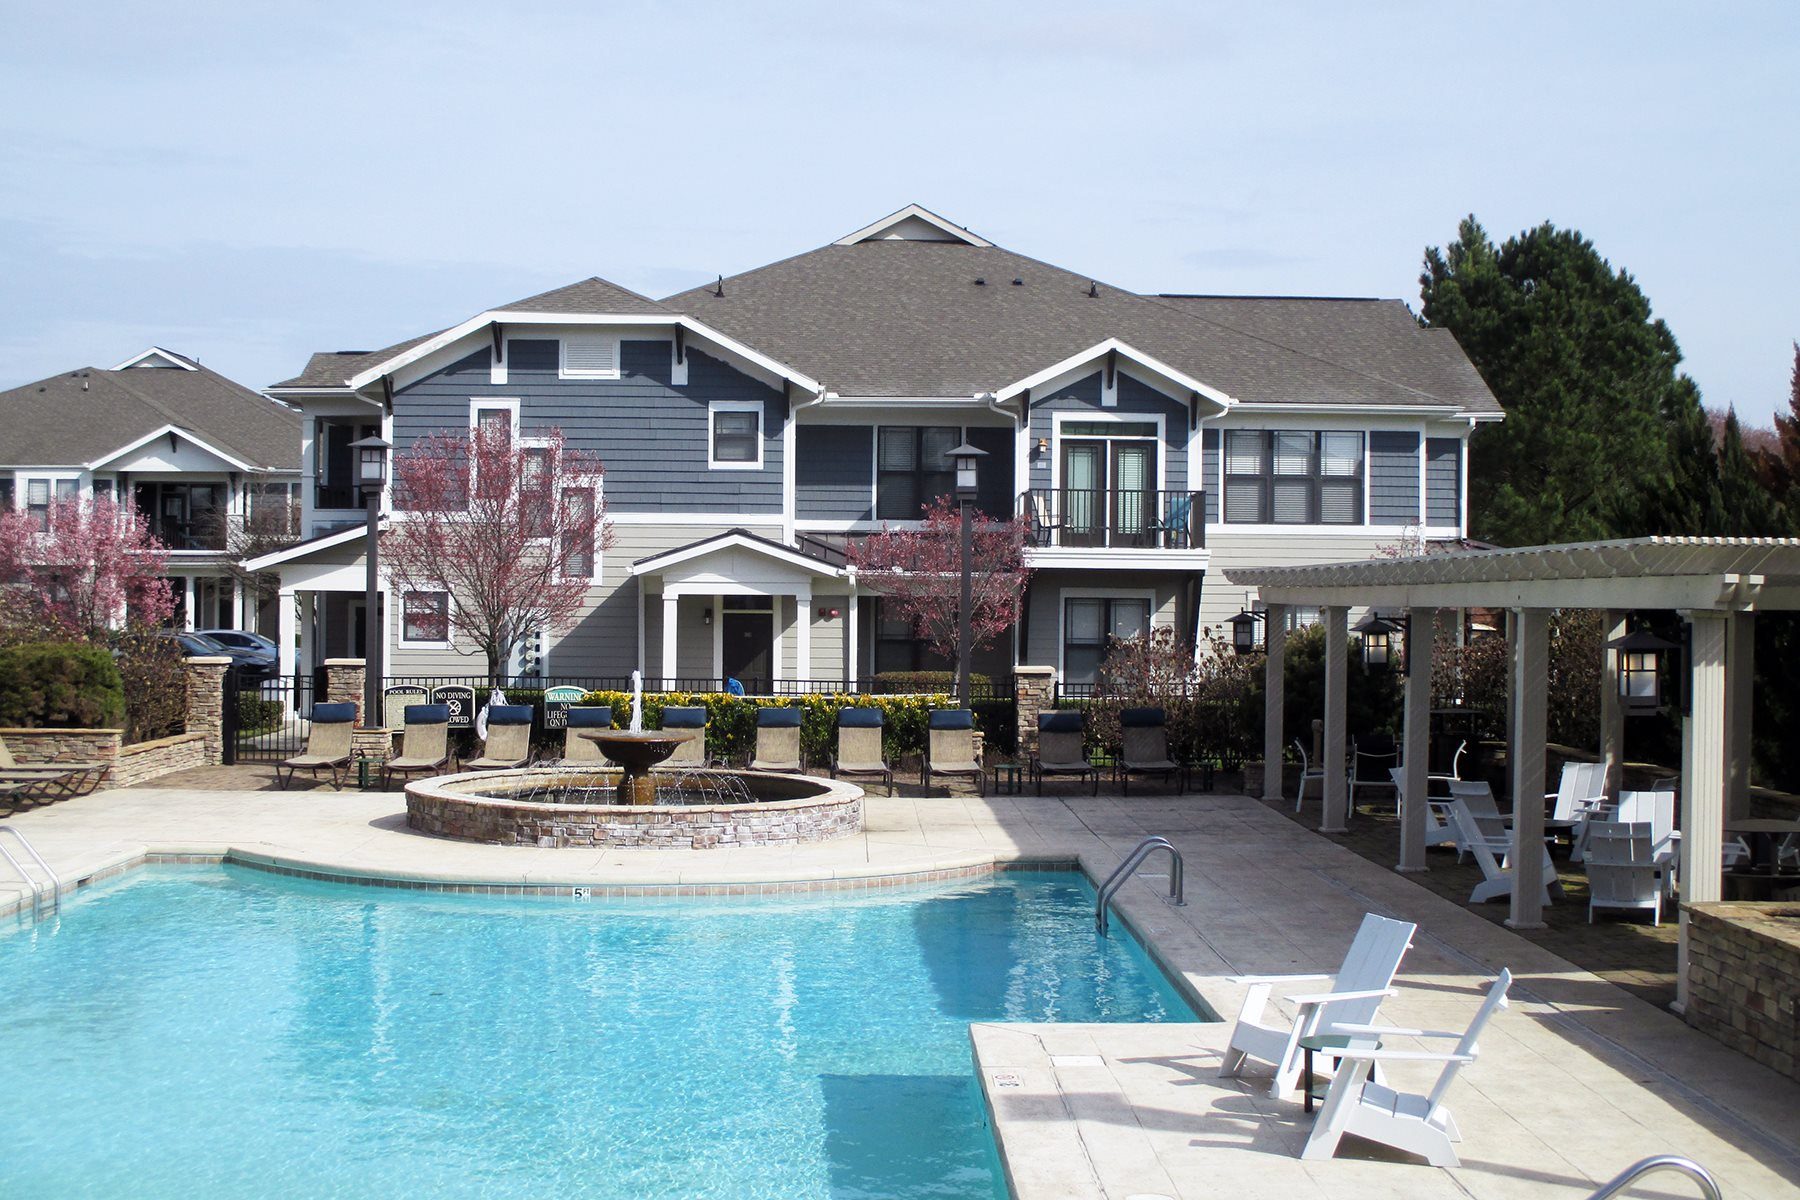 The apartments at blakeney apartments in charlotte nc - 1 bedroom apartment in charlotte nc ...